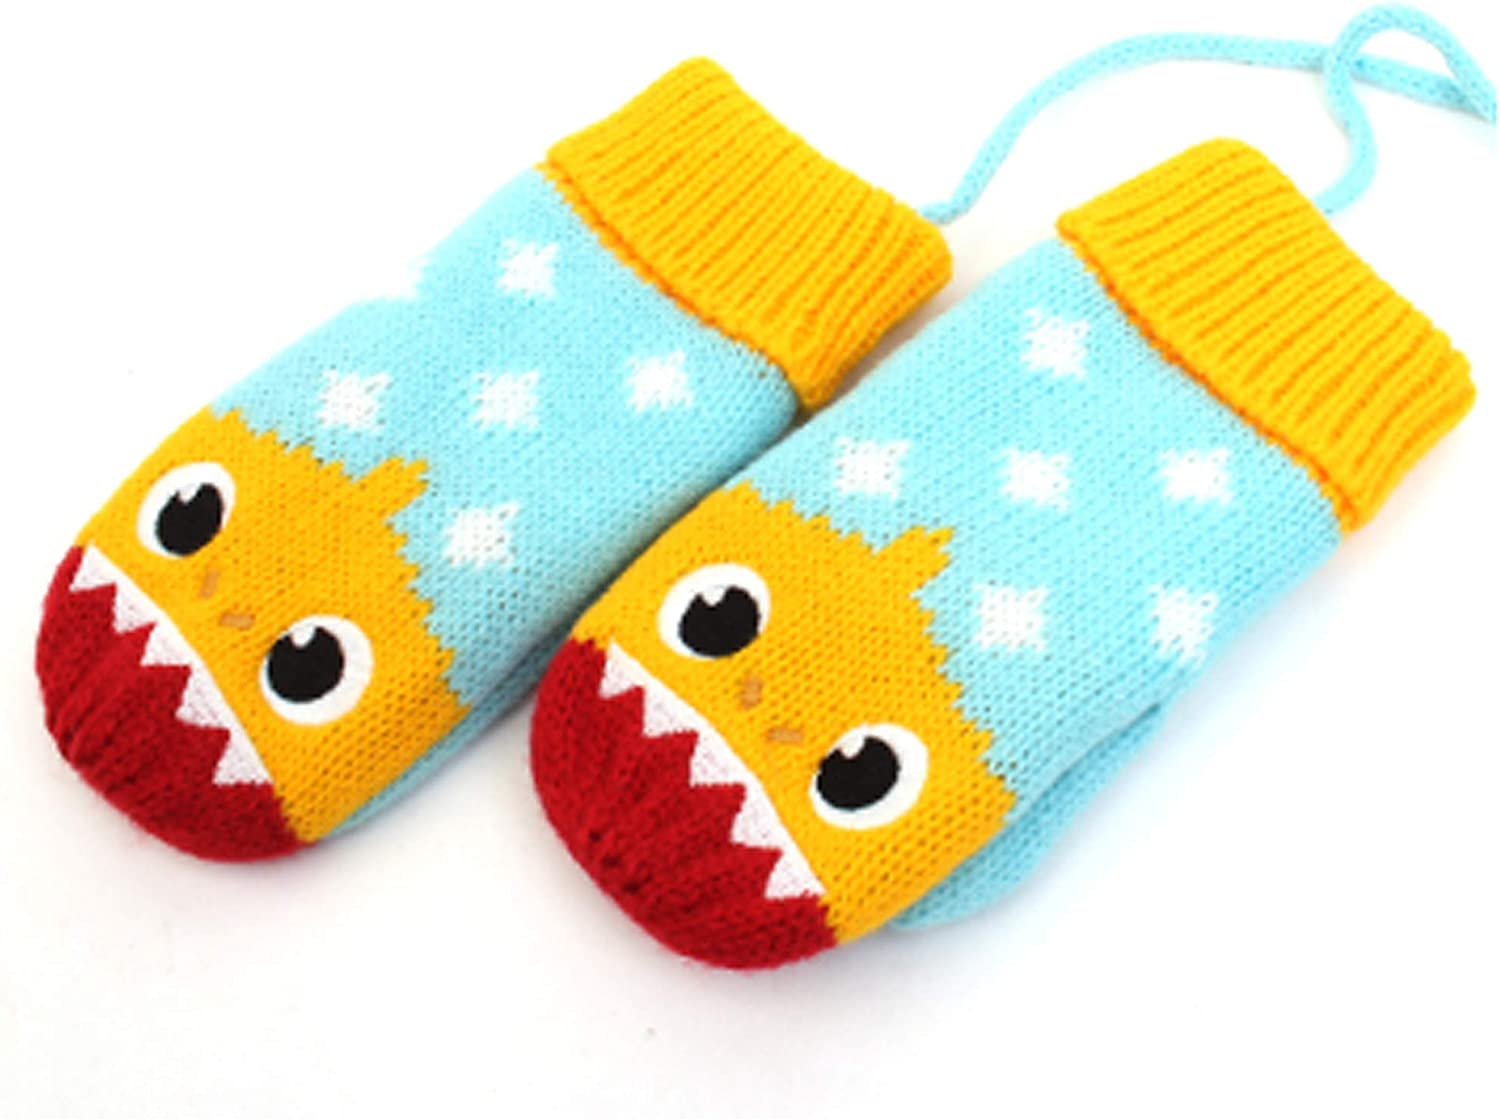 Kidsnory Babyshrk Mittens Knit Kids Cold Weather Gloves Warm Winter Mittens for Little Boys and Girls, Yellow